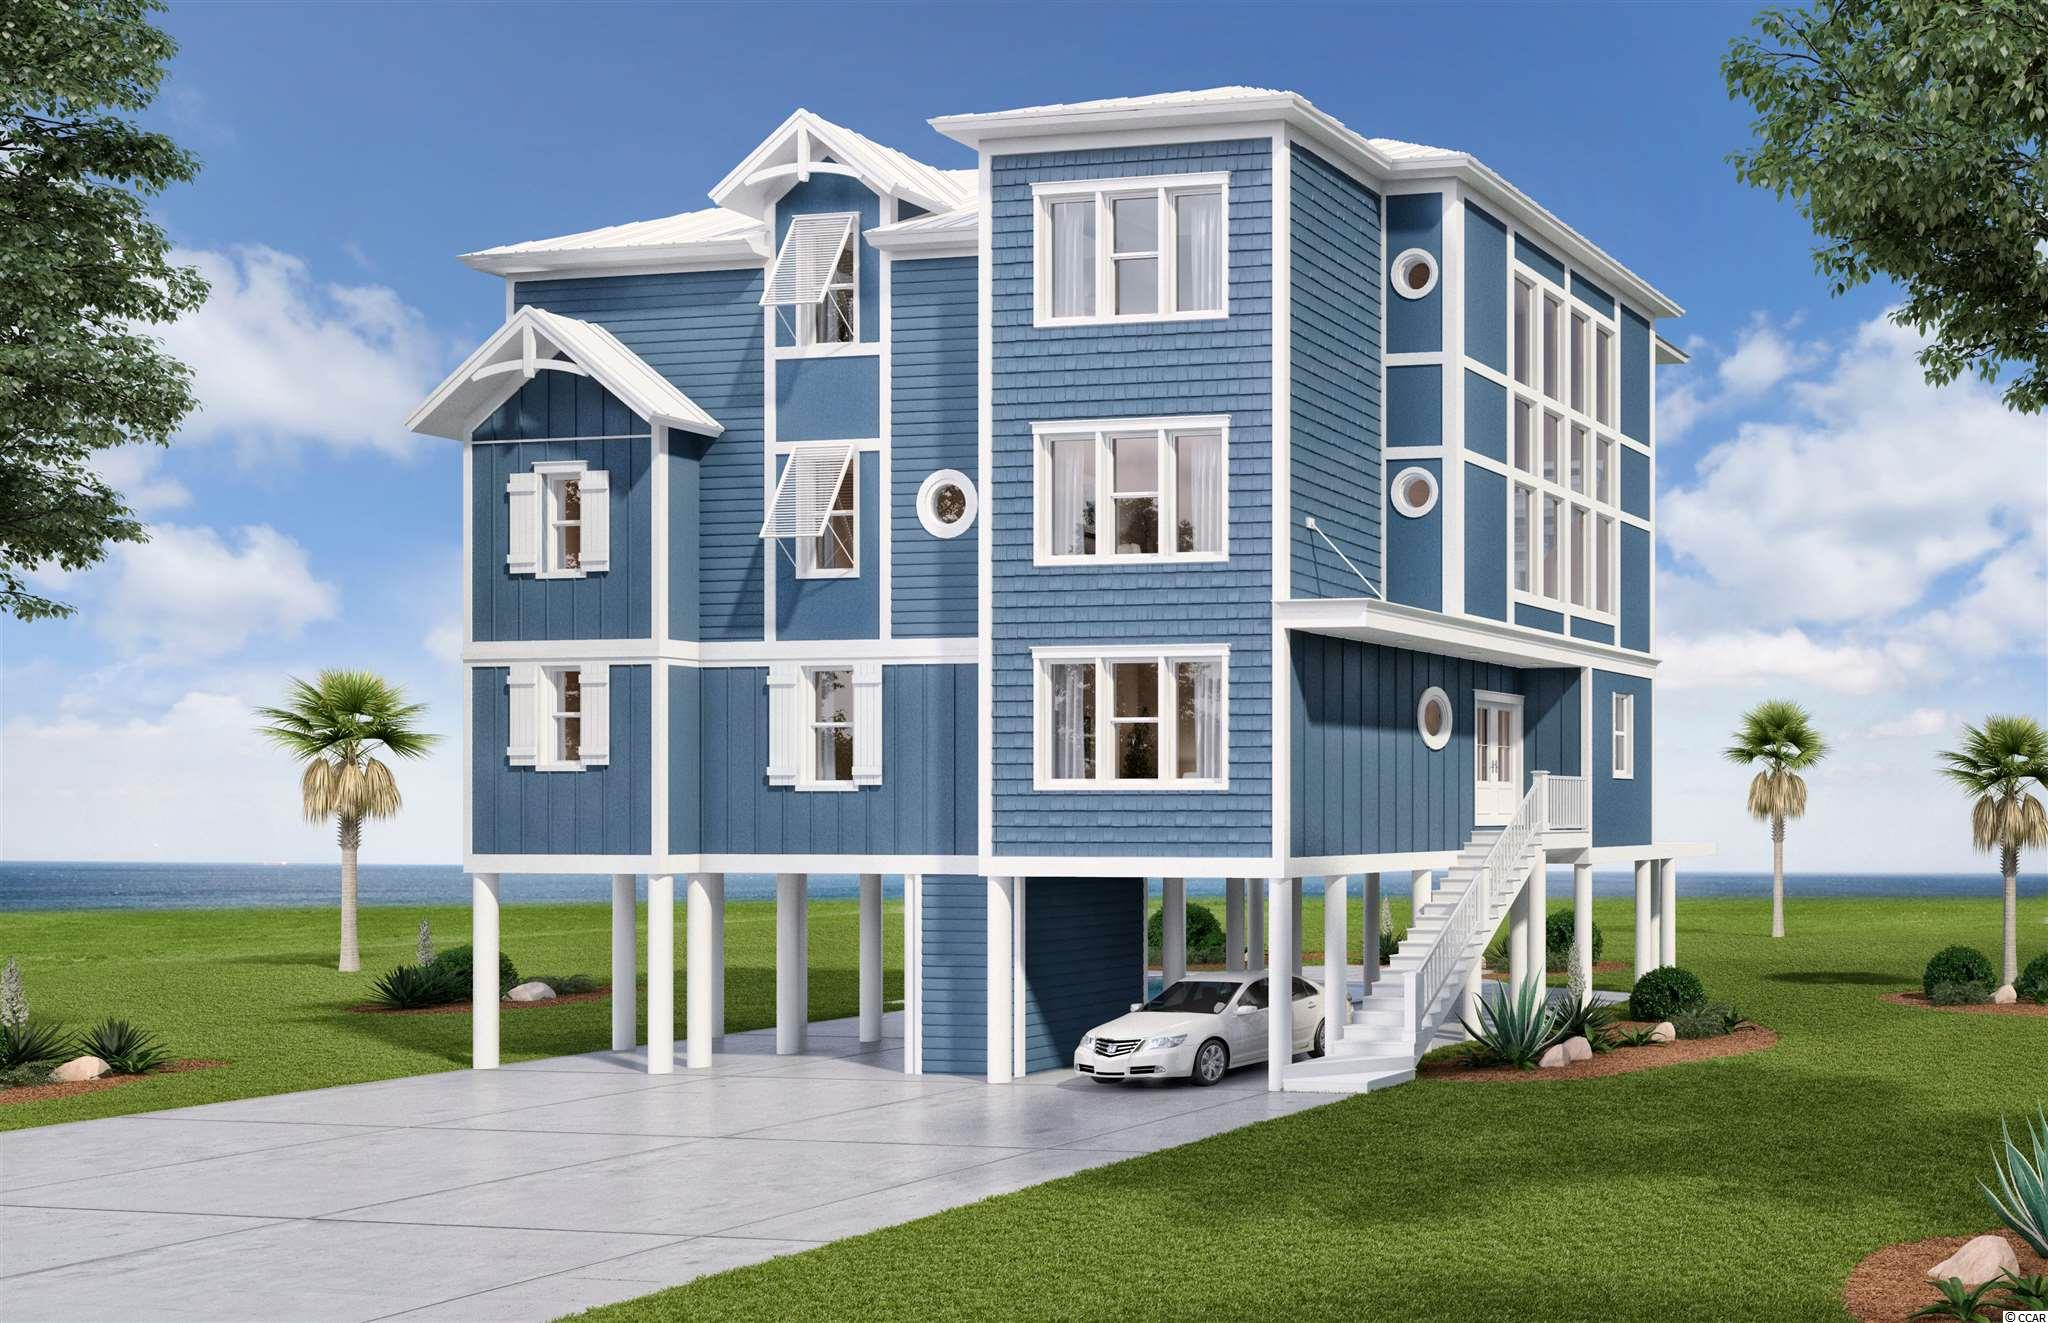 Custom designed and built direct oceanfront home under construction in Surfside Beach to be completed for summer 2022 season. Only the fifth oceanfront home built in Surfside in the last 15 years and one look at the plans and the front rendering of the house will demonstrate that this house will be truly special. 45' wide home on this oversized Surfside lot will allow for spectacular views from most every room and each of the three tiers of covered porches. With 8 bedrooms including 2 large bunkrooms this home will sleep 26 comfortably and the oversized kitchen and 3 common areas will give everyone a chance to spread out and enjoy the home. The outside pool area will include both a hot tub and a tanning shelf while the home also includes an elevator and has been engineered to the latest wind load standards including impact glass and metal roof for hurricane protection. To many other fit and finish options to detail so contact your agent for more info!